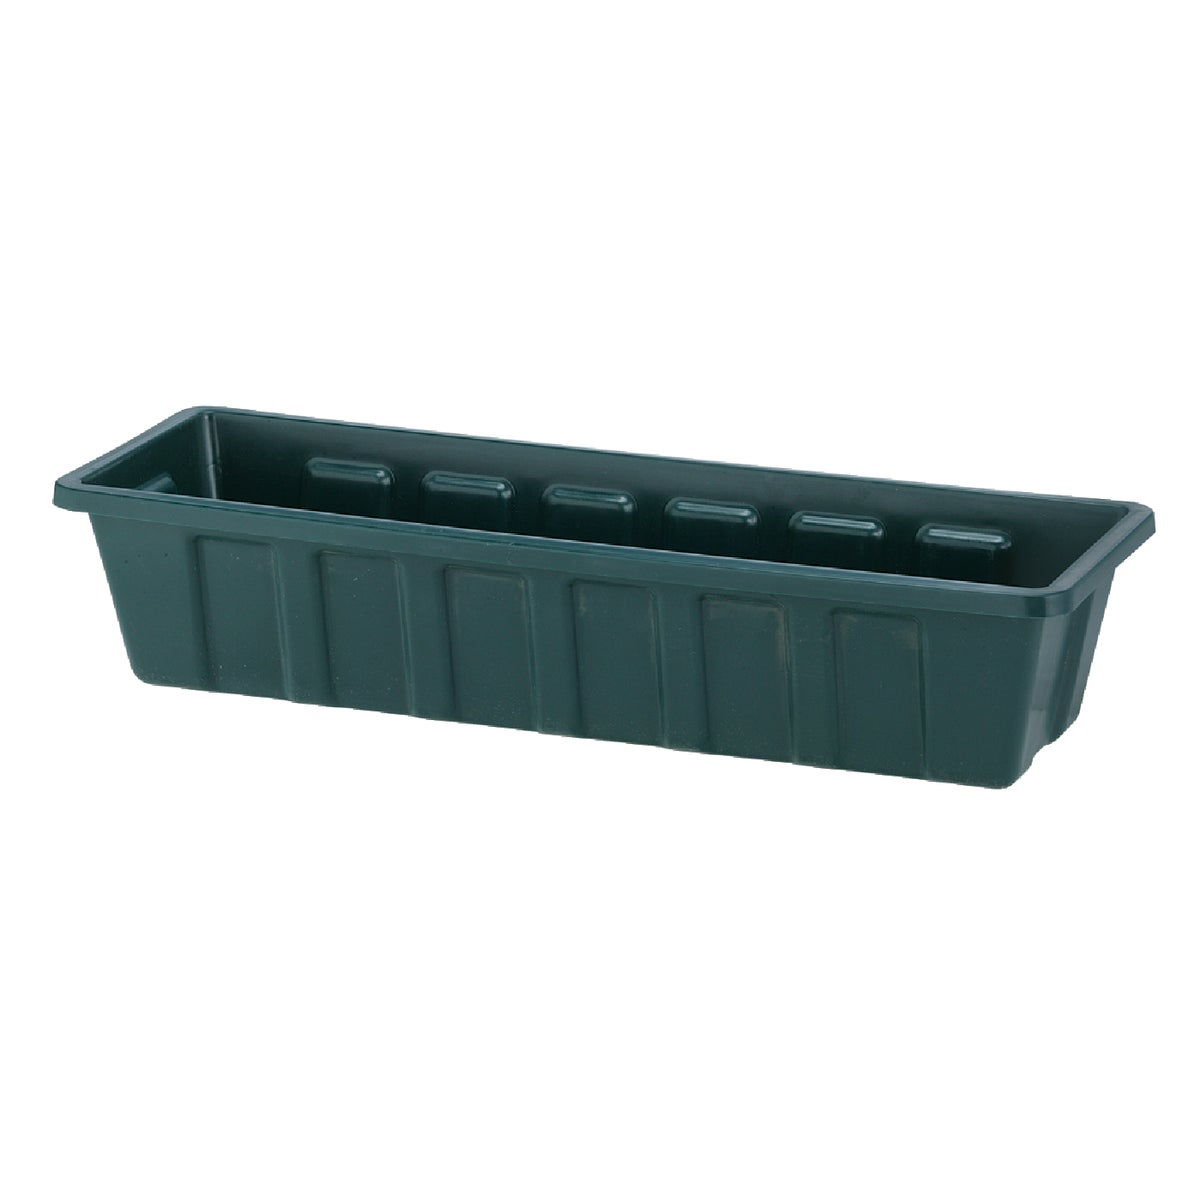 "24"" FLOWER BOX PLANTER - 0224 by Novelty Mfg Co"